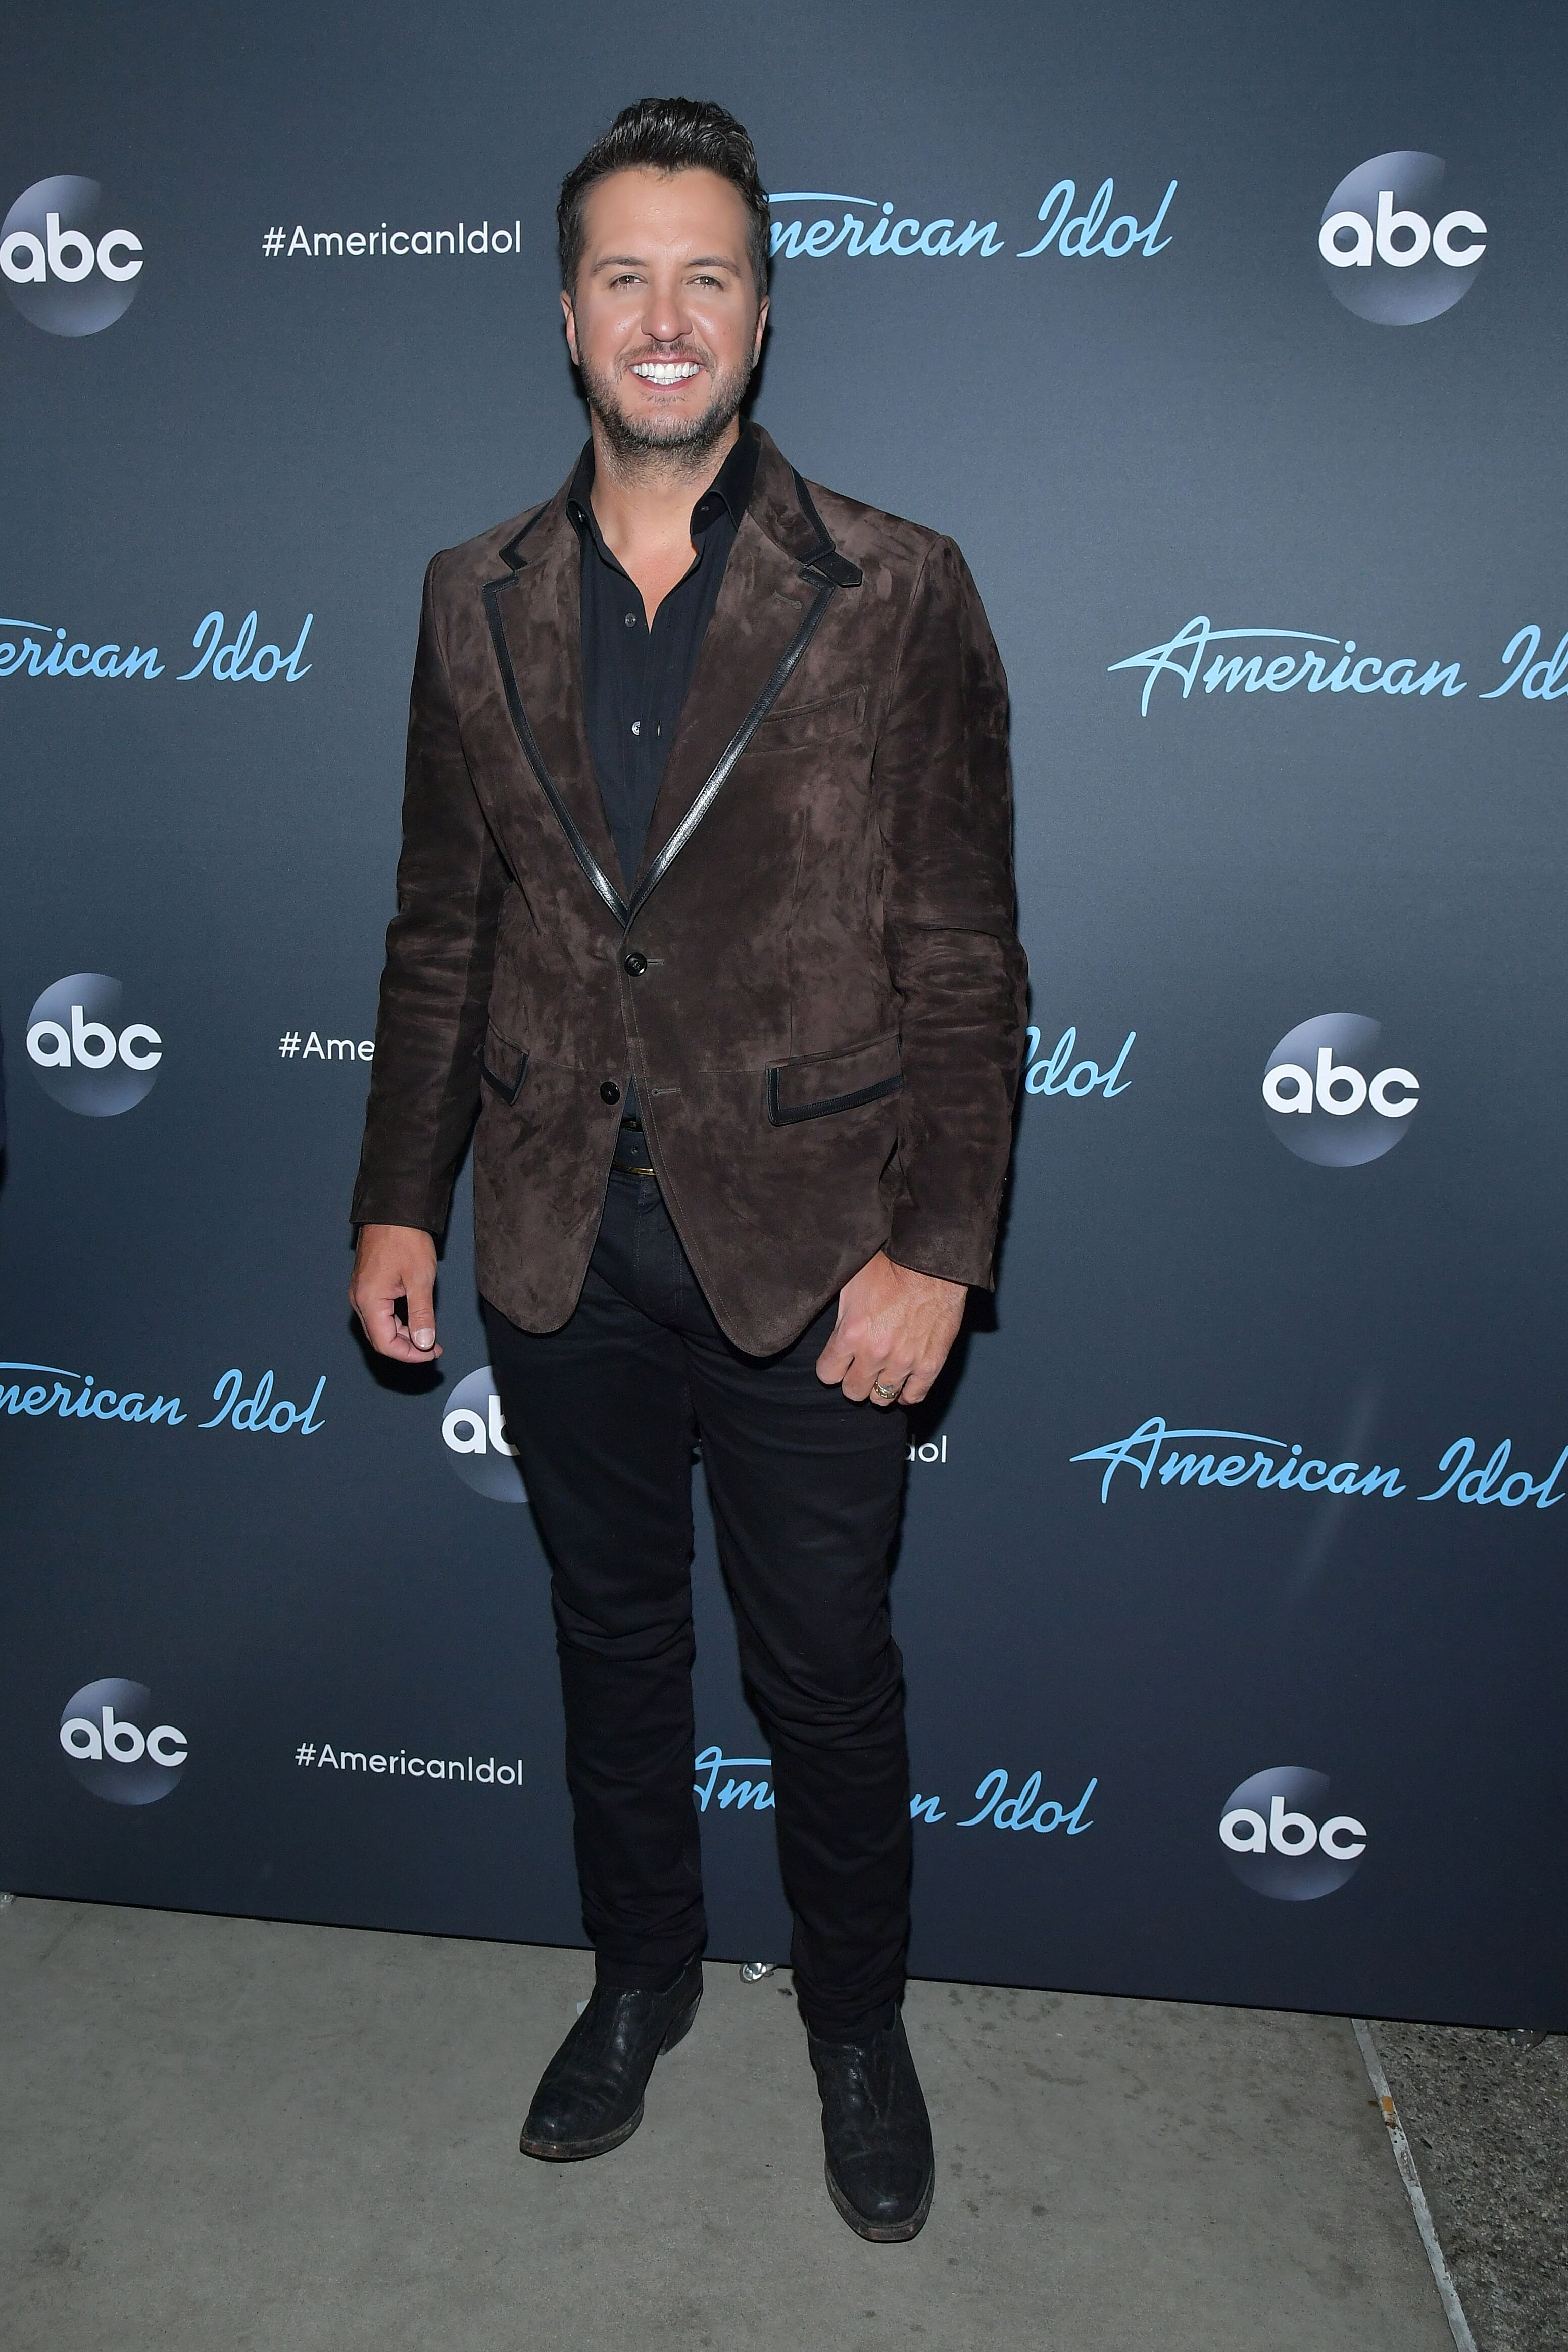 Luke Bryan at American Idol Finale on May 19, 2019, in Los Angeles, California   Photo: Amy Sussman/Getty Images